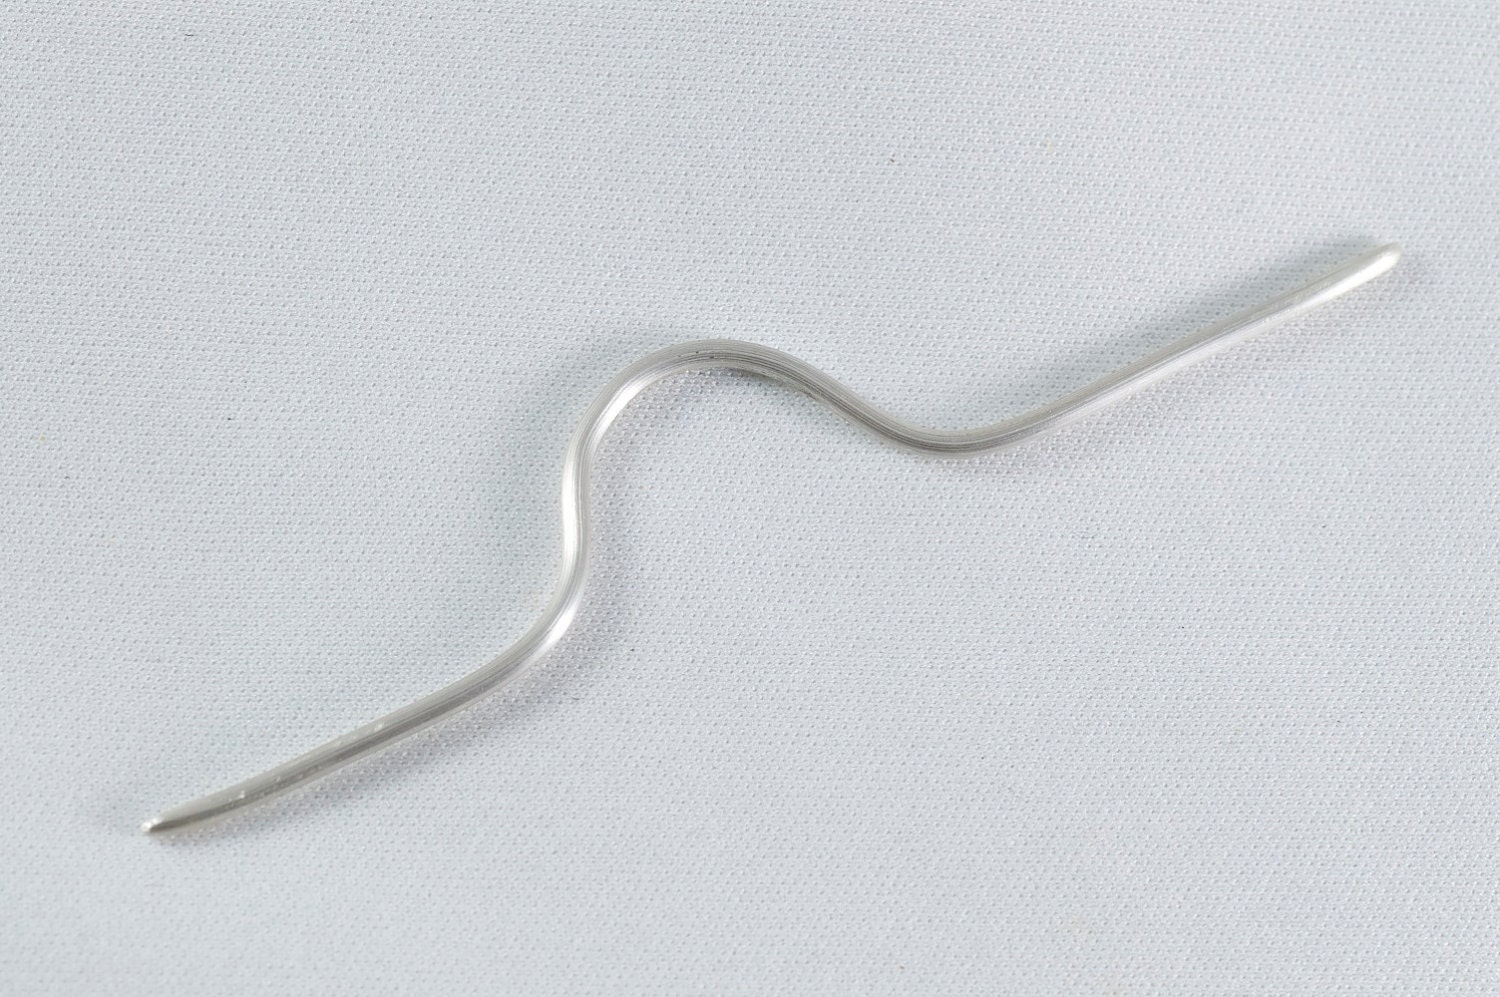 Rope Knitting Needles : Silver cable knitting needle tool supplies